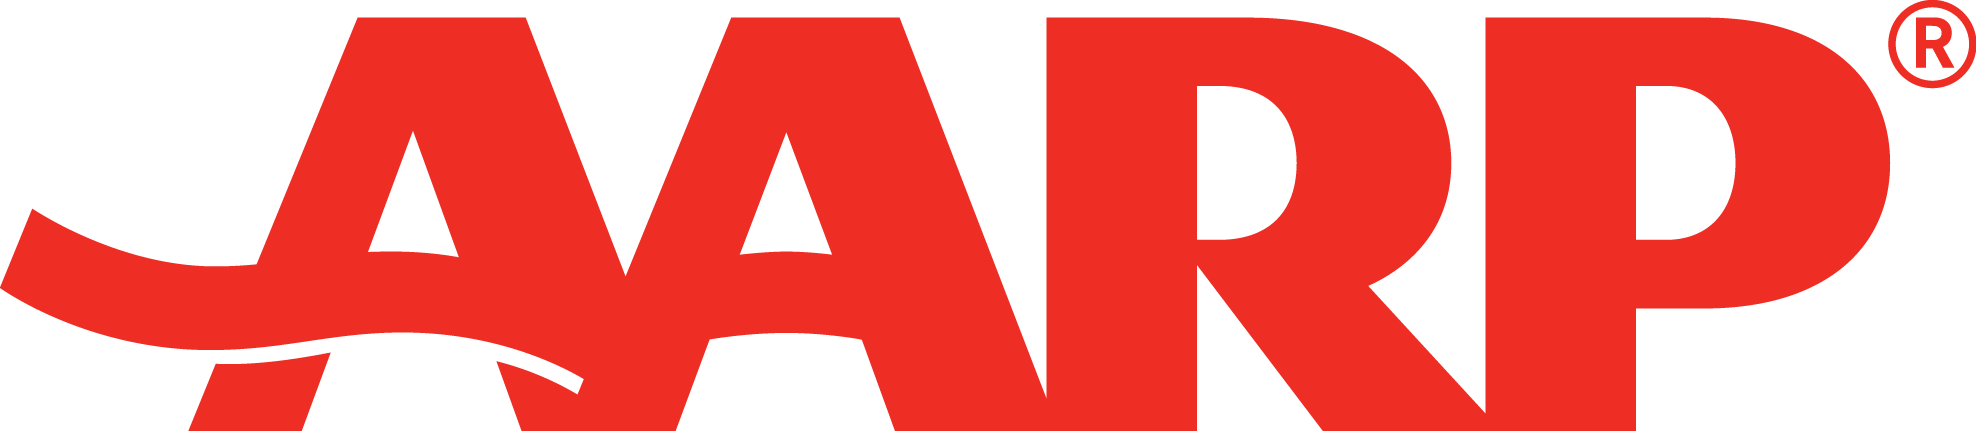 Aarp logo download free clipart with a transparent.